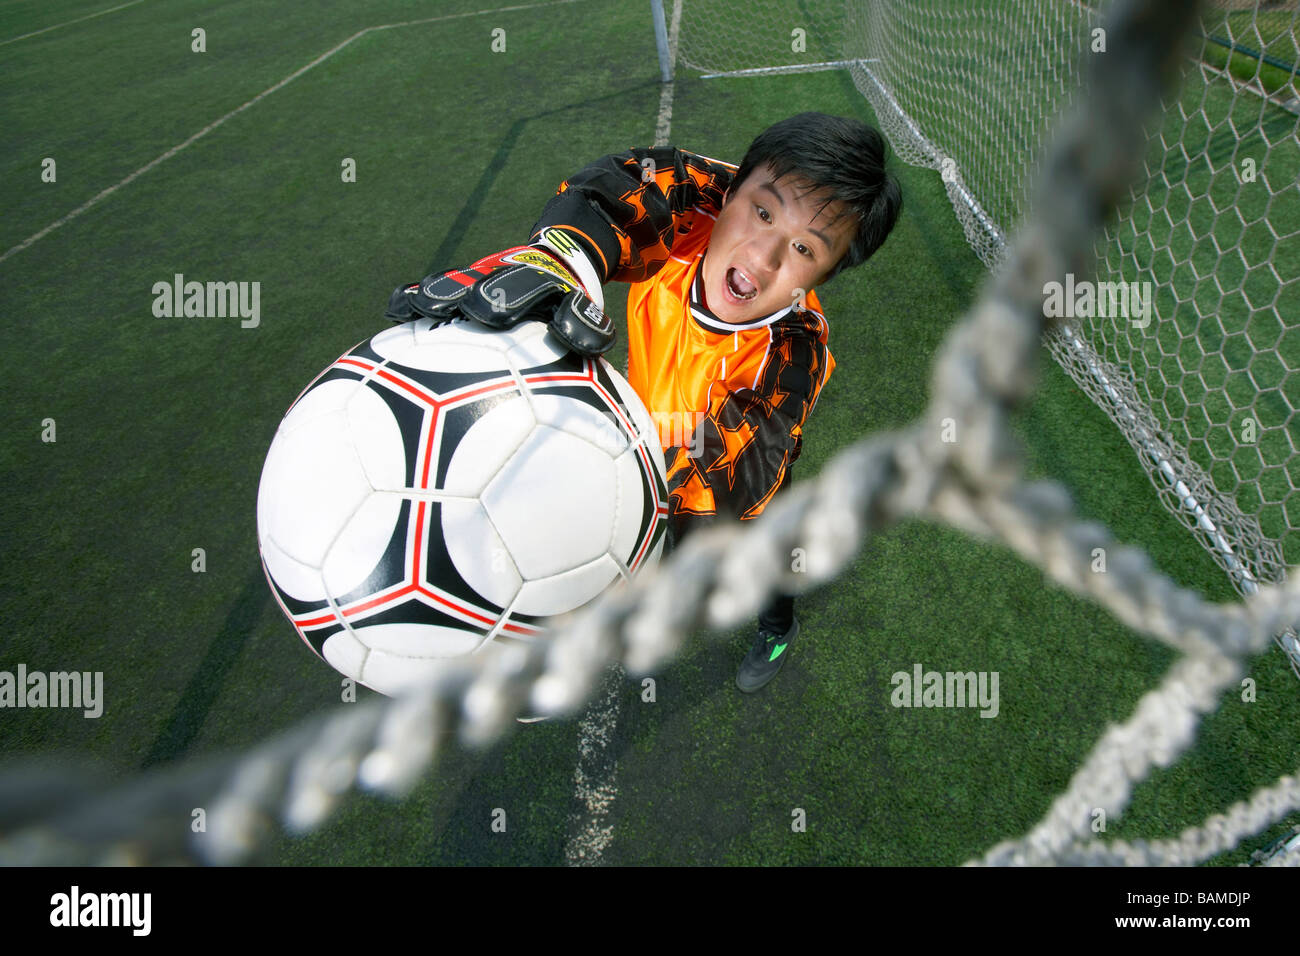 Goalkeeper Catching Soccer Ball - Stock Image